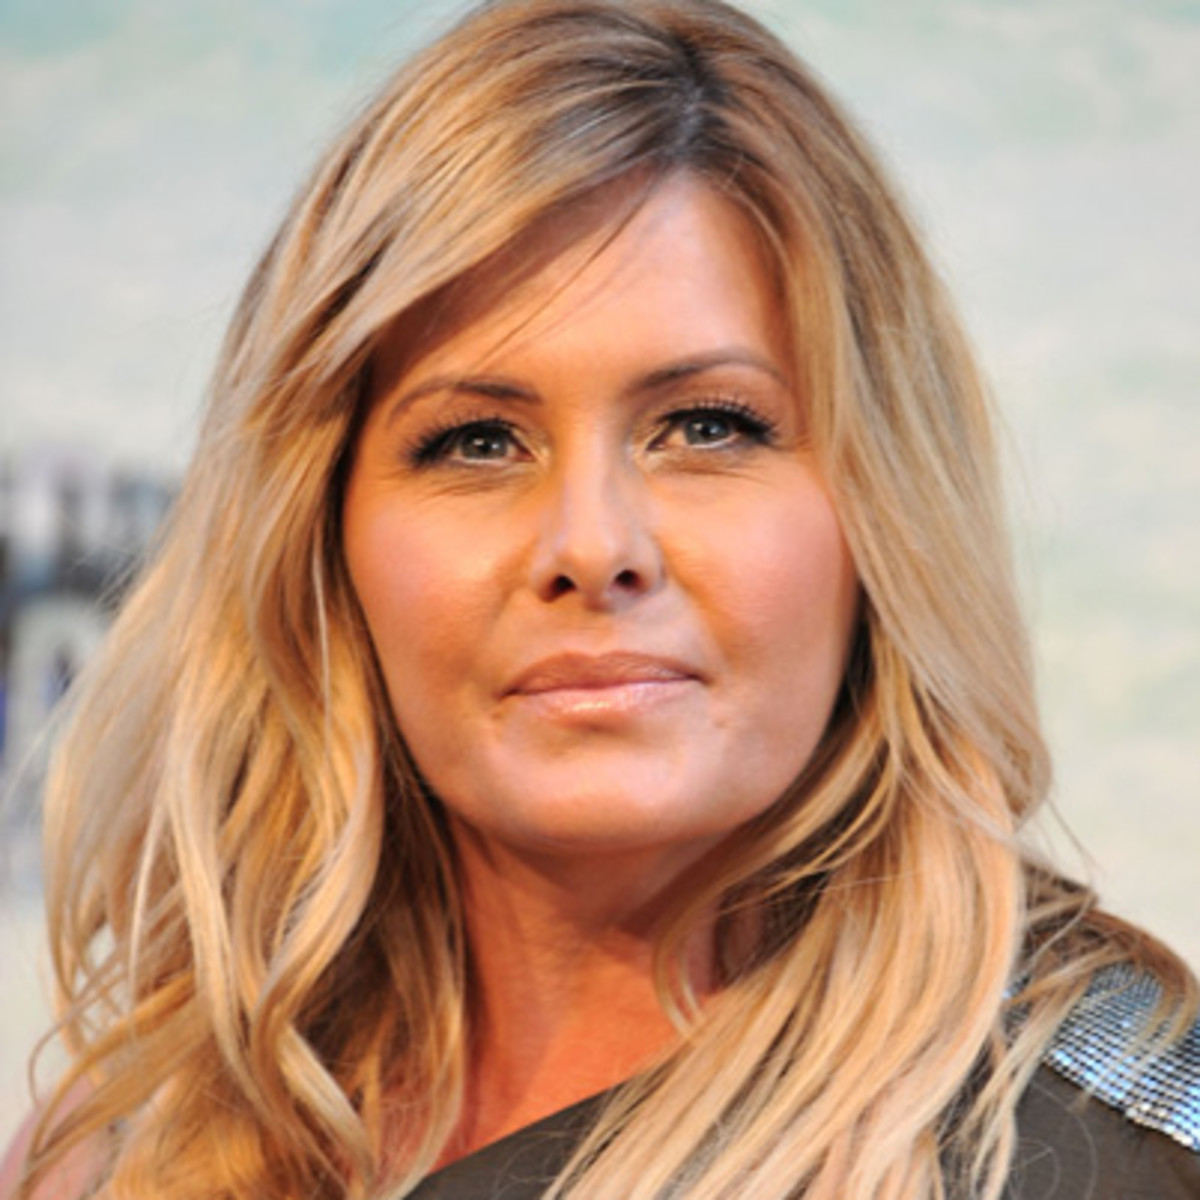 Nicole Eggert born January 13, 1972 (age 46)